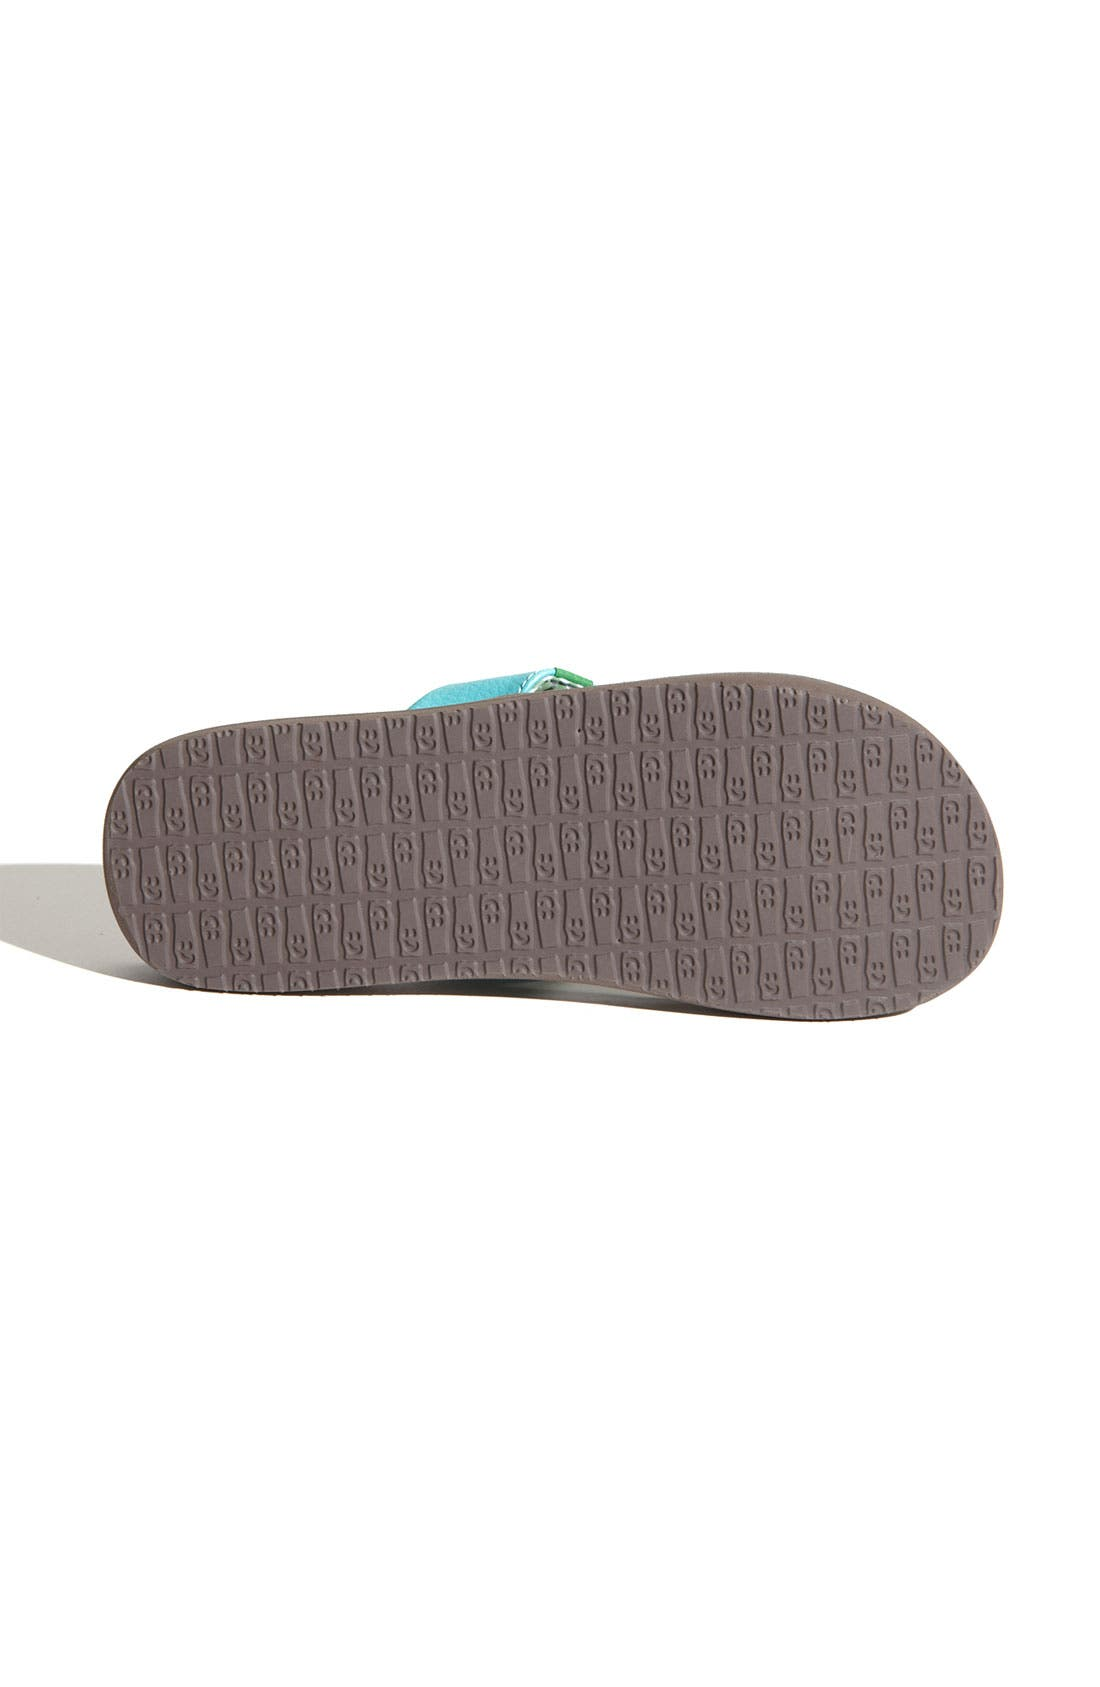 Alternate Image 4  - Sanuk 'Yoga Mat' Flip Flop (Women)